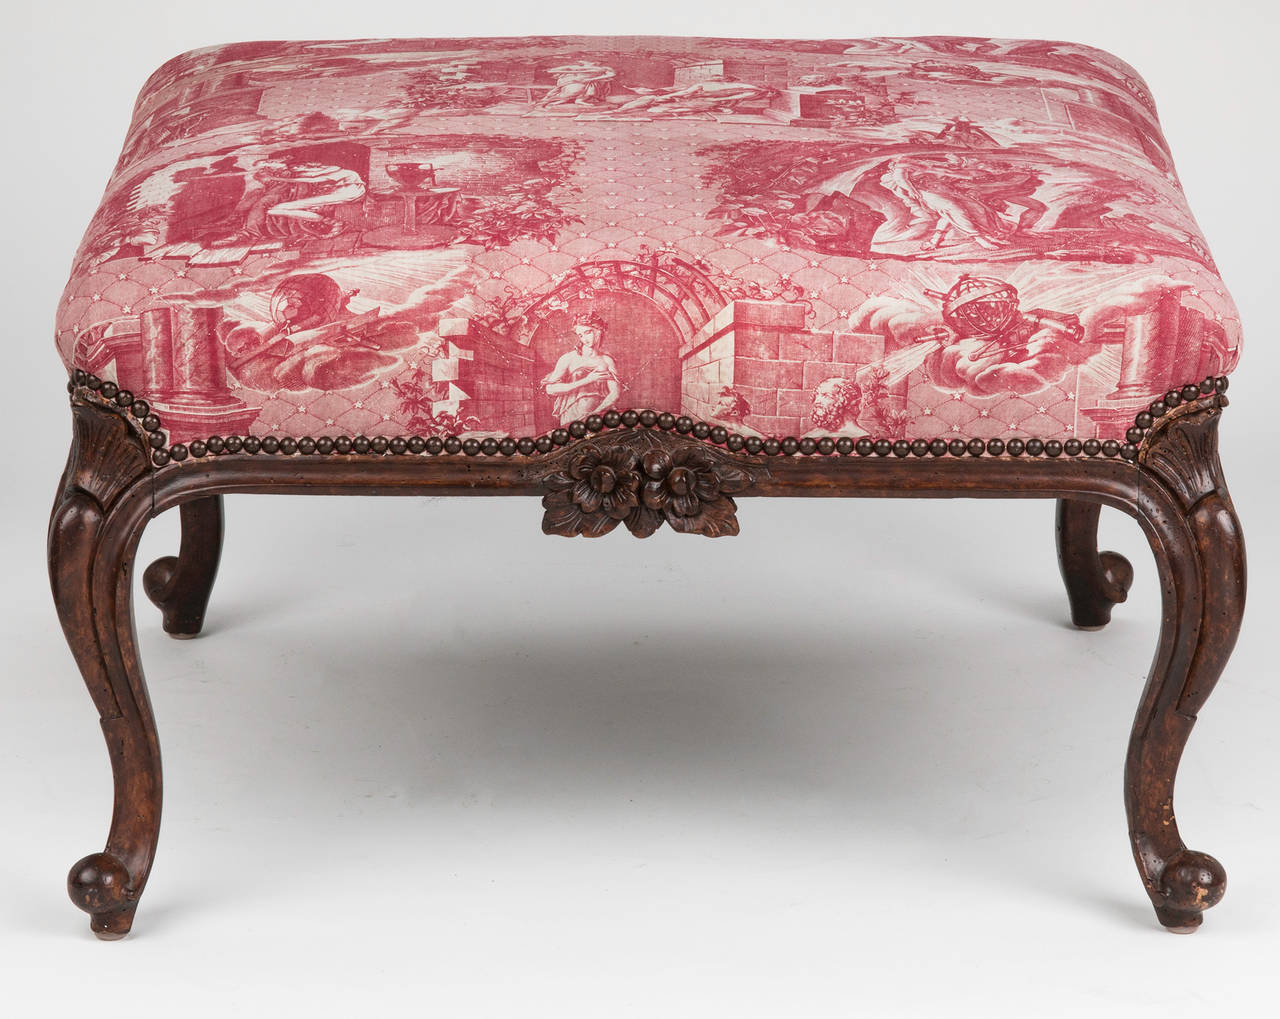 C.1850 Overscale Large French Ottoman Or Bench 2